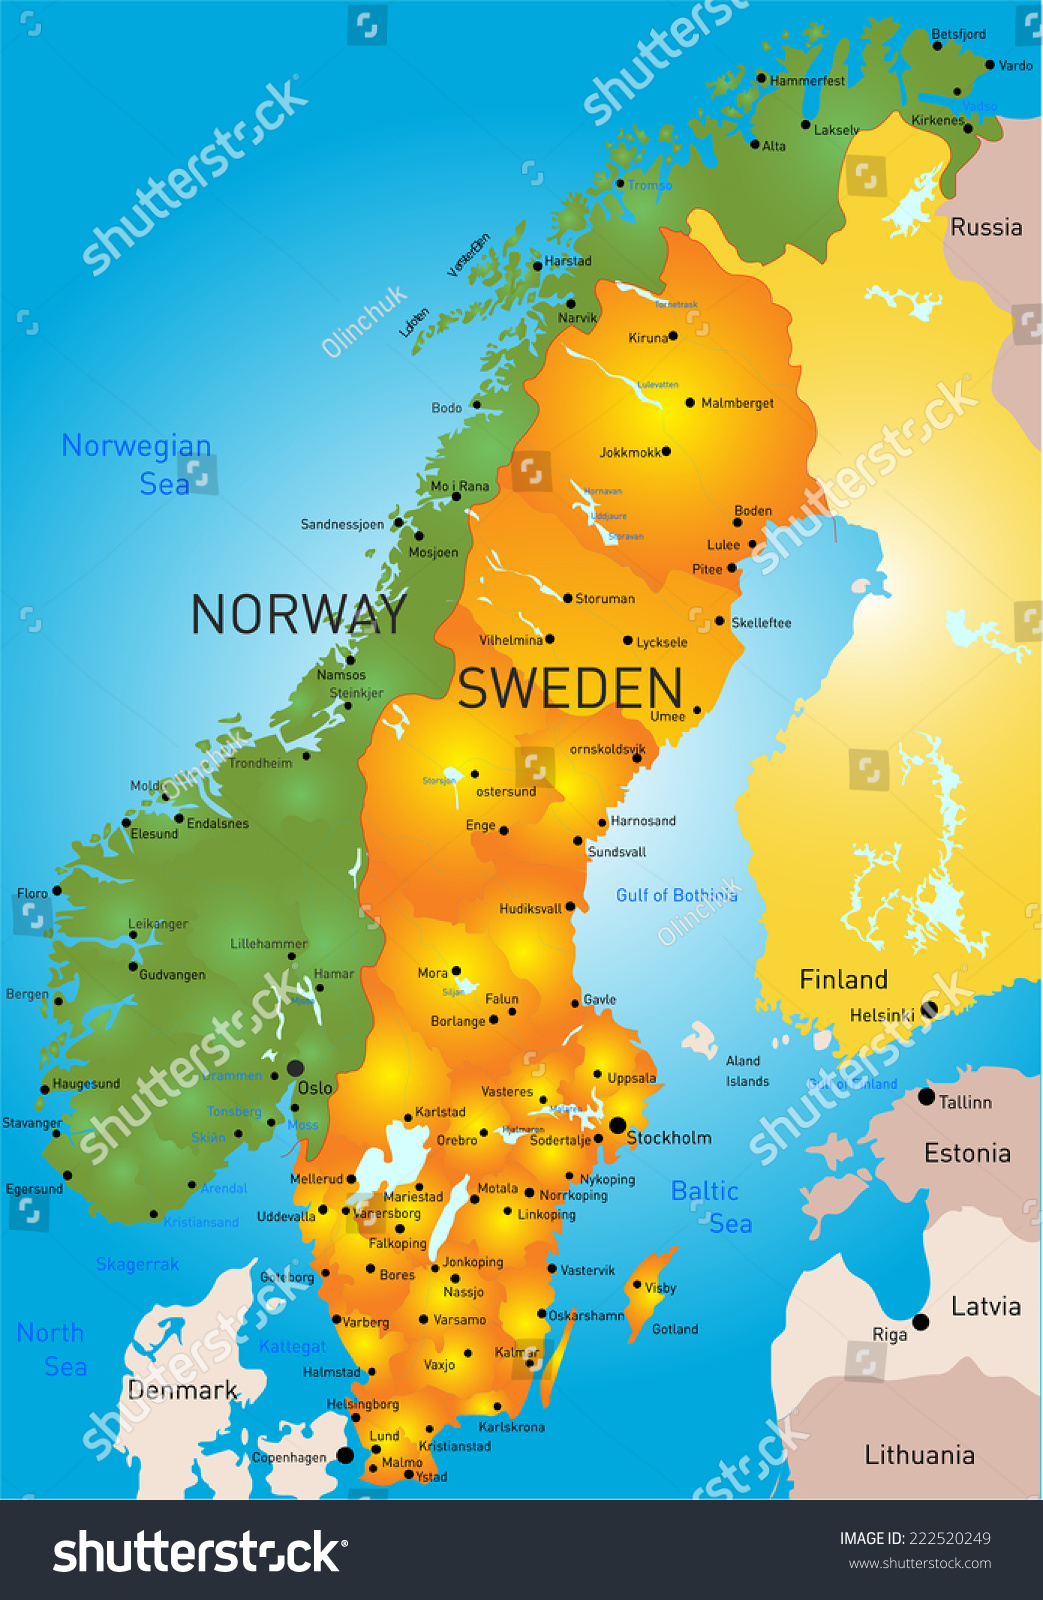 Vector Color Map Sweden Country Stock Vector Shutterstock - Sweden map of country